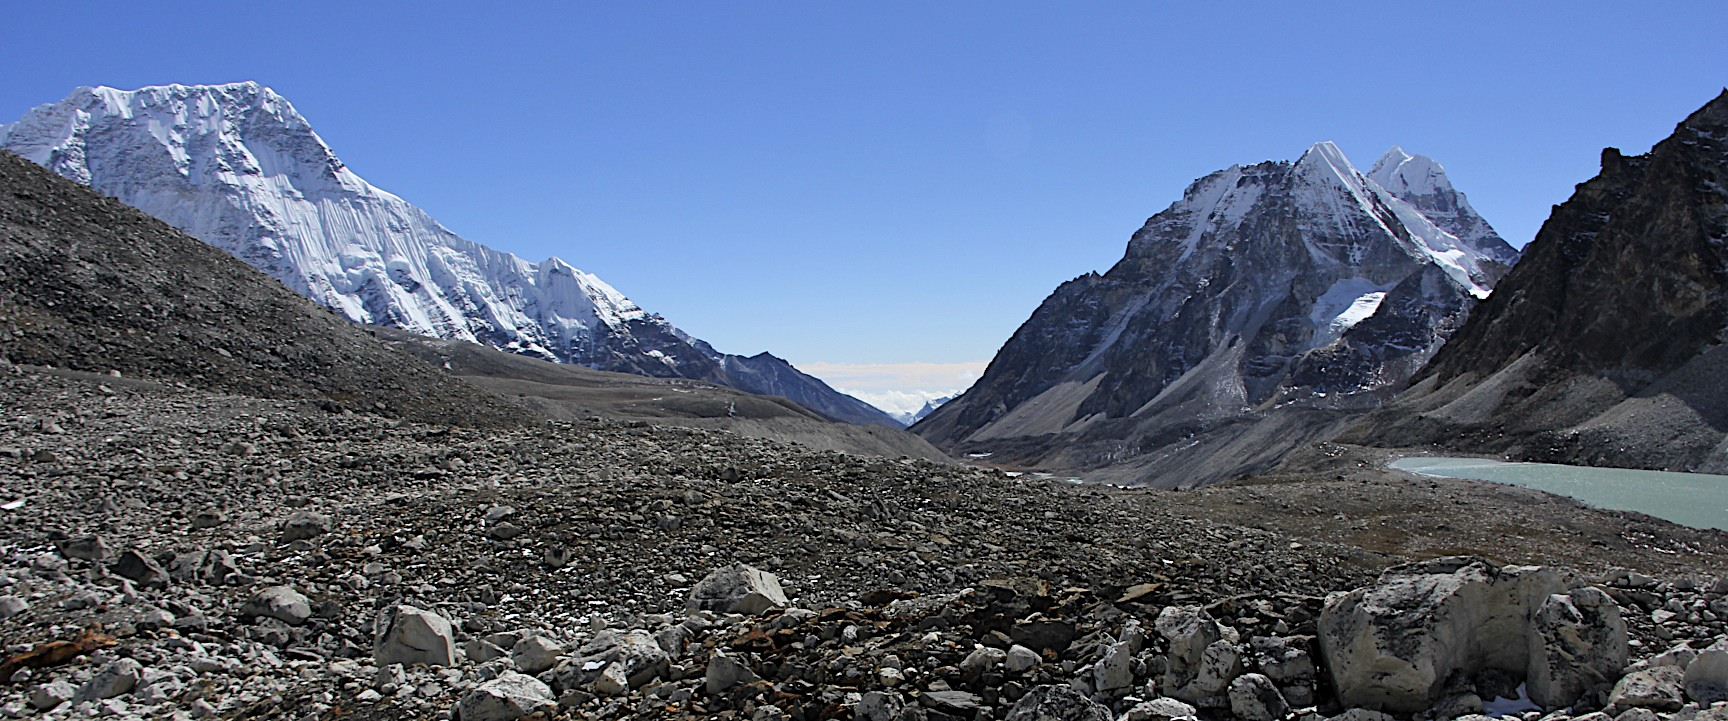 Chamlang on the left and Hinku valley in the centre.